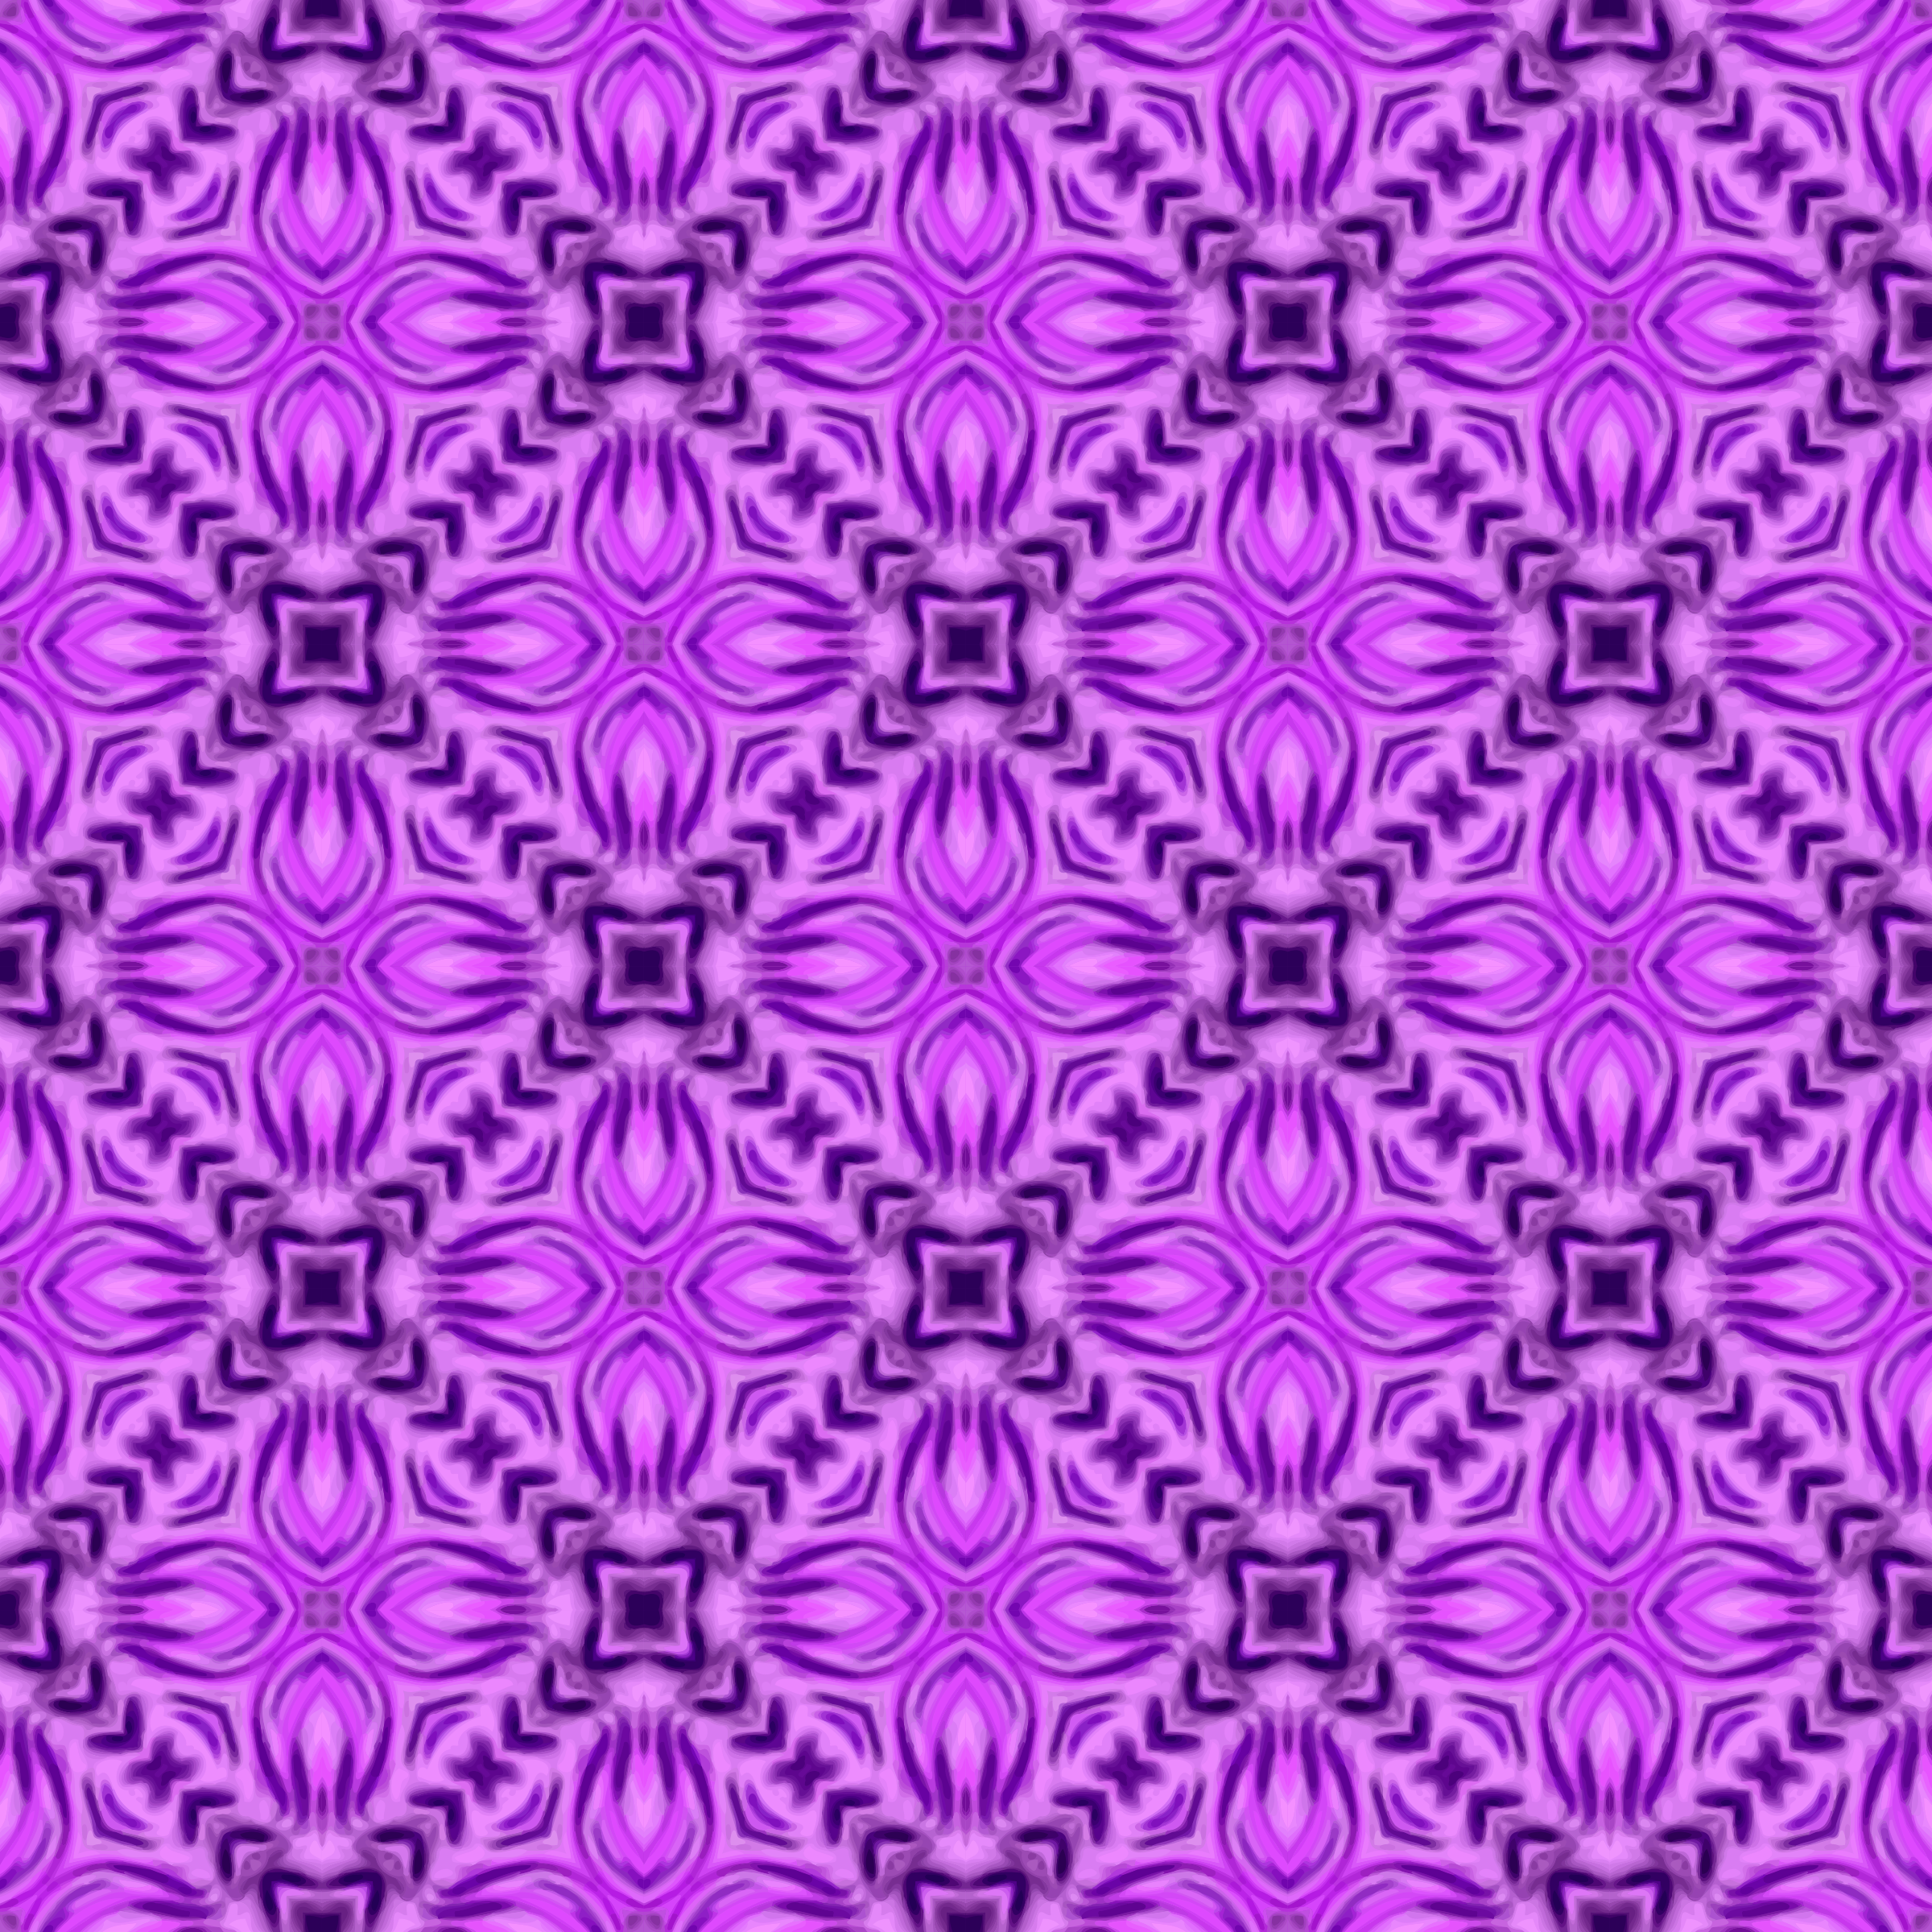 Background pattern 162 (colour 3) by Firkin